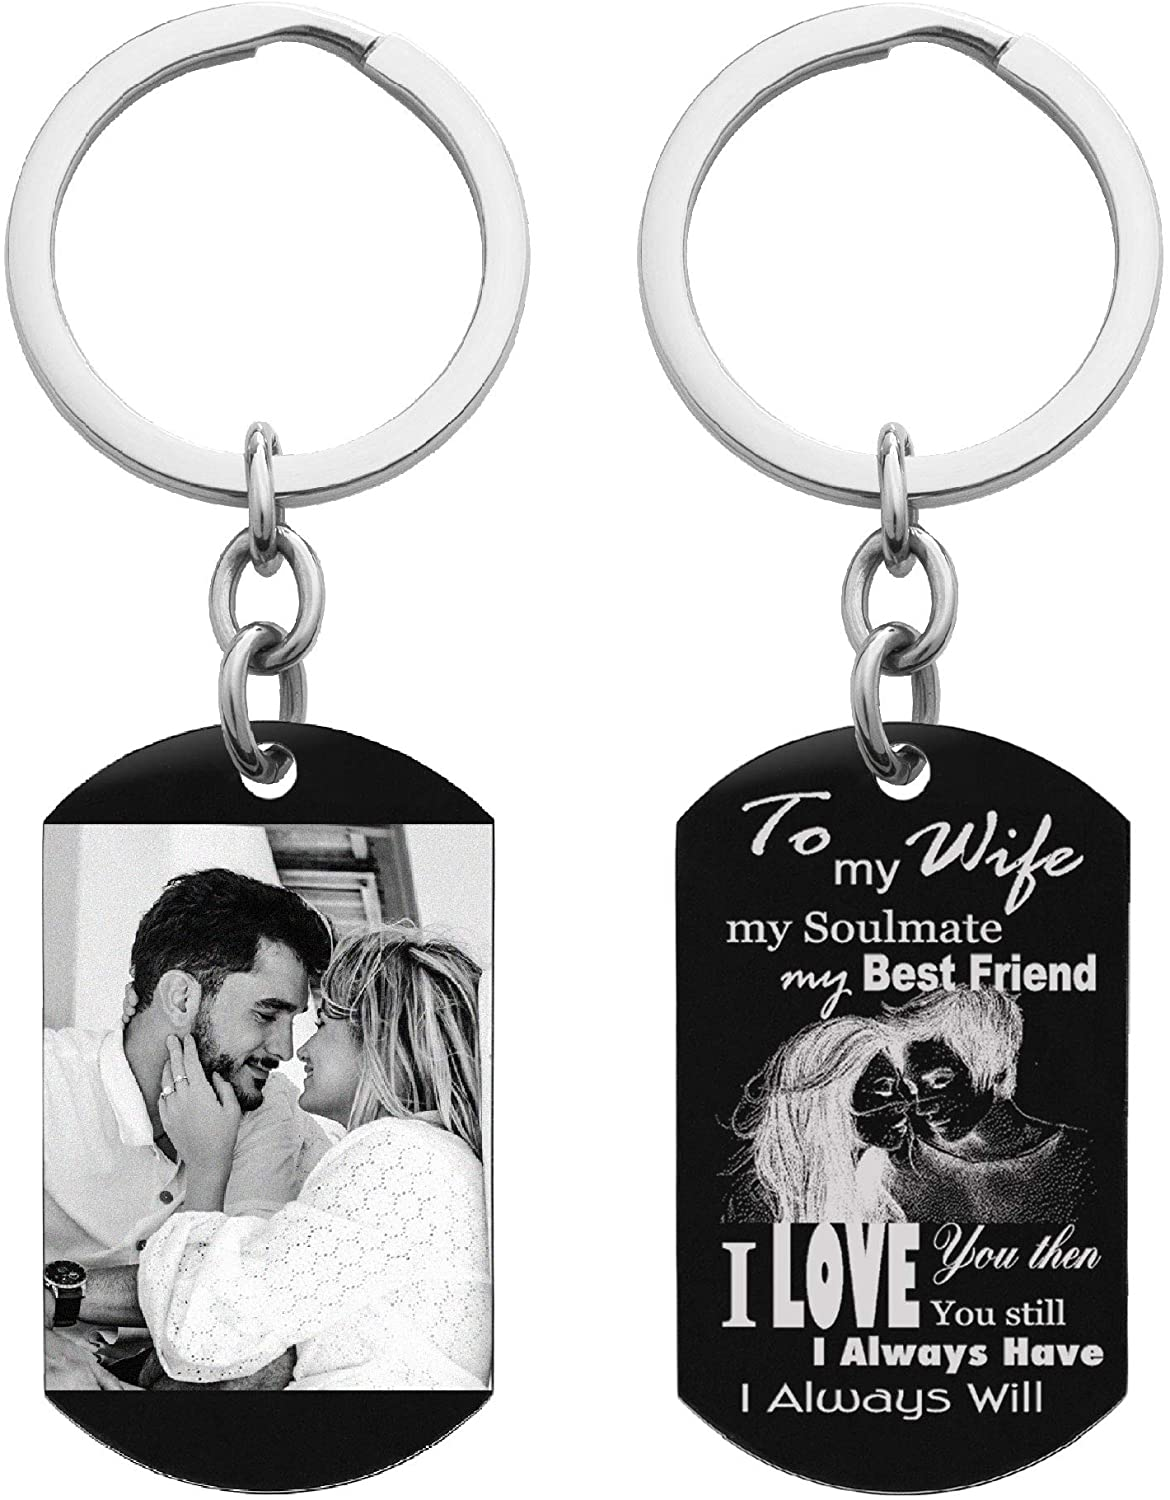 Queenberry to My Wife My Soulmate My Best Friend Custom Photo Personalized Text Message Dog Tag w/Dot Ball Chain Necklace 24 Key Chain - Handmade